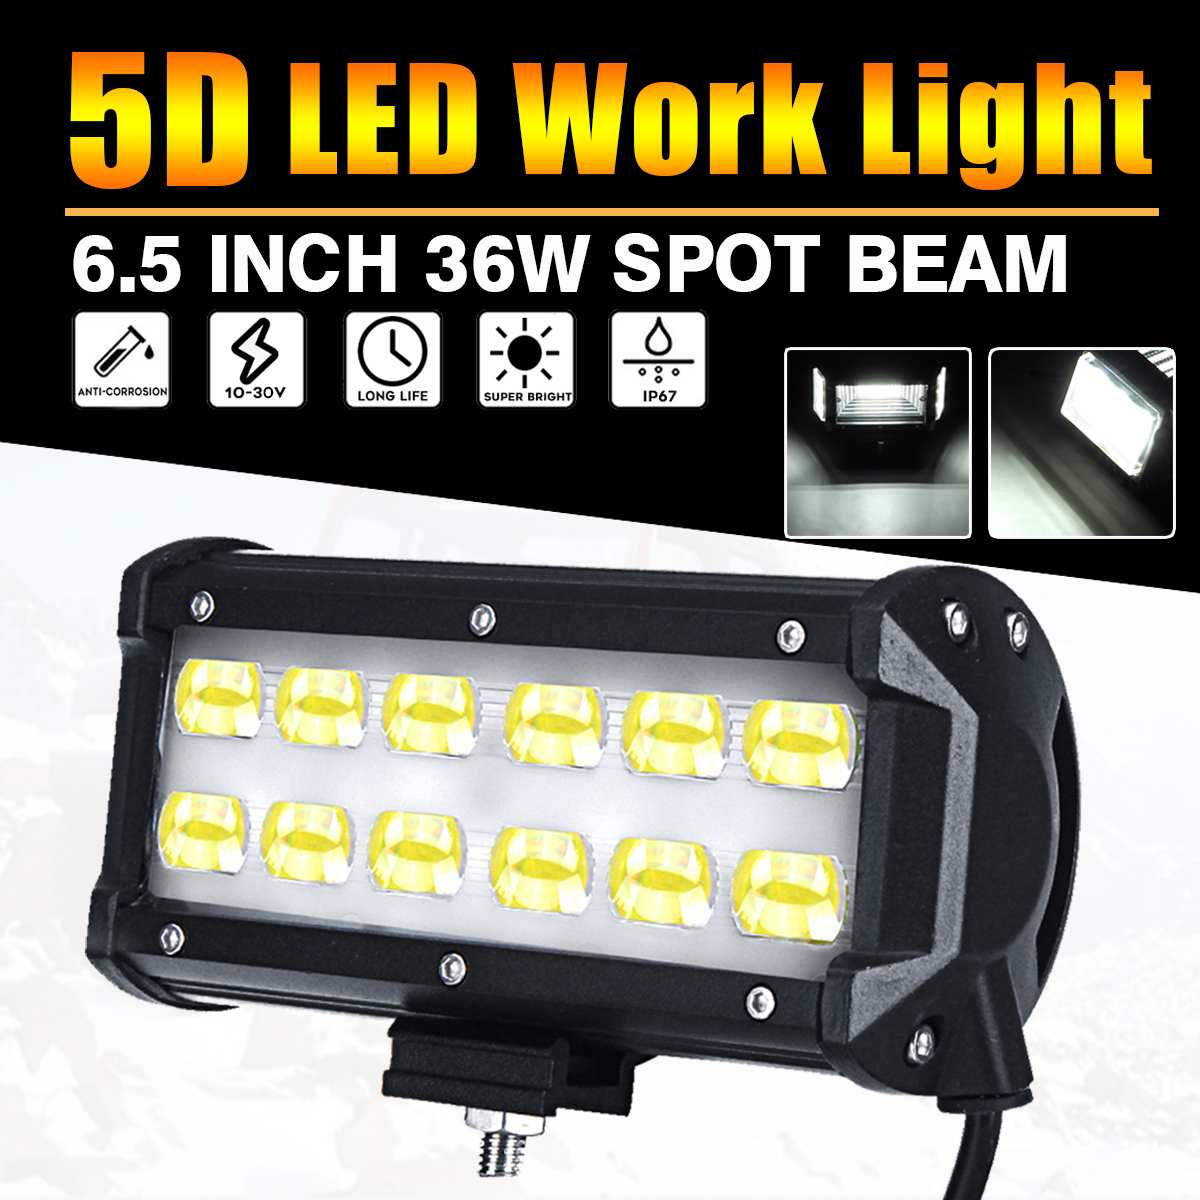 5D 36W LED Work Light Spot Beam For Boat Truck Offroad 4WD SUV 6000K IP67 White Lamp image